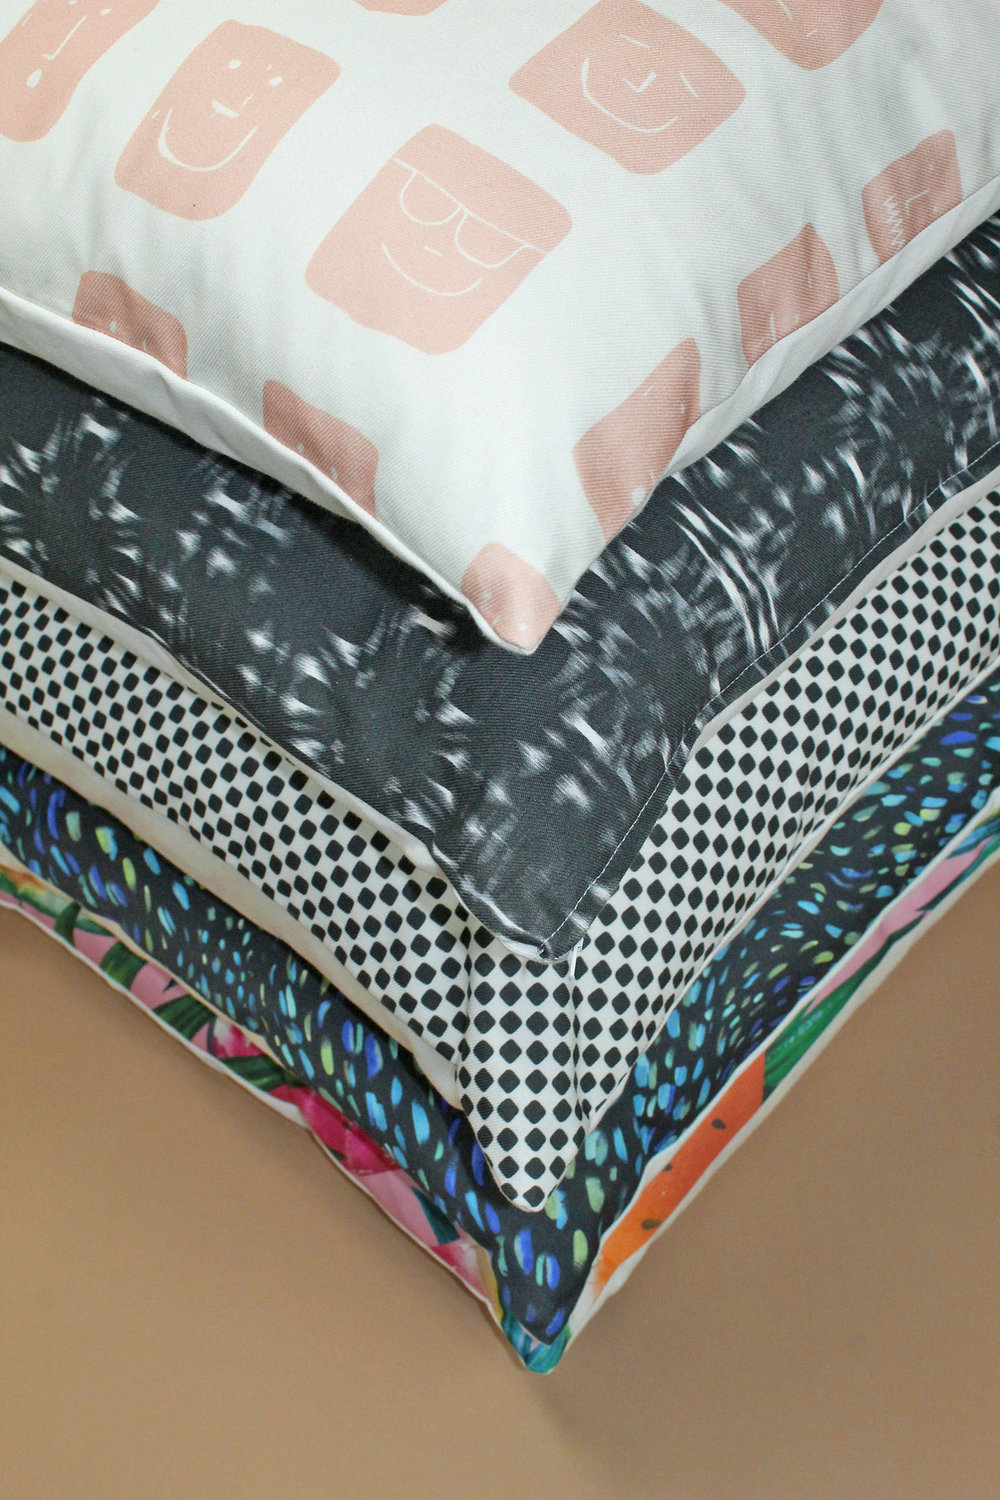 Pillow Covers - Decorative home decor accent. Made in USA.